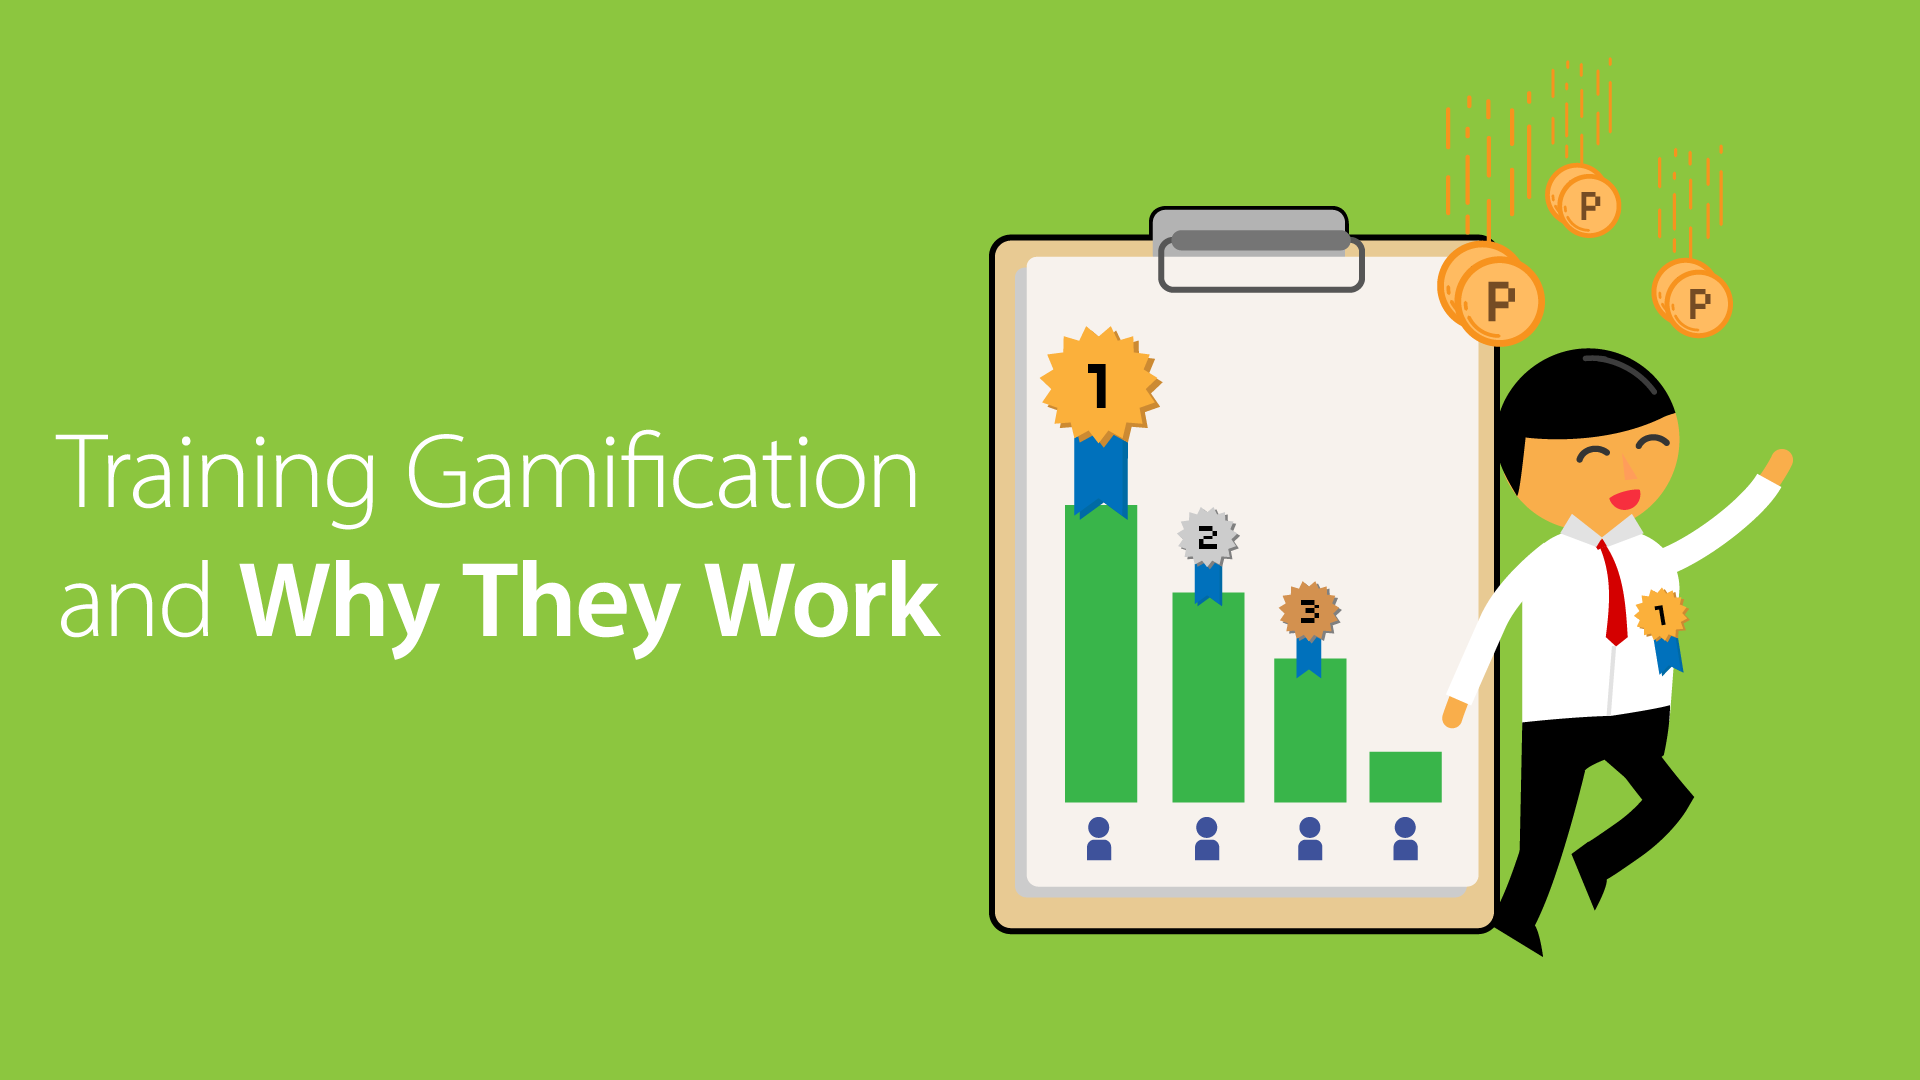 Why Gamification Works for Training